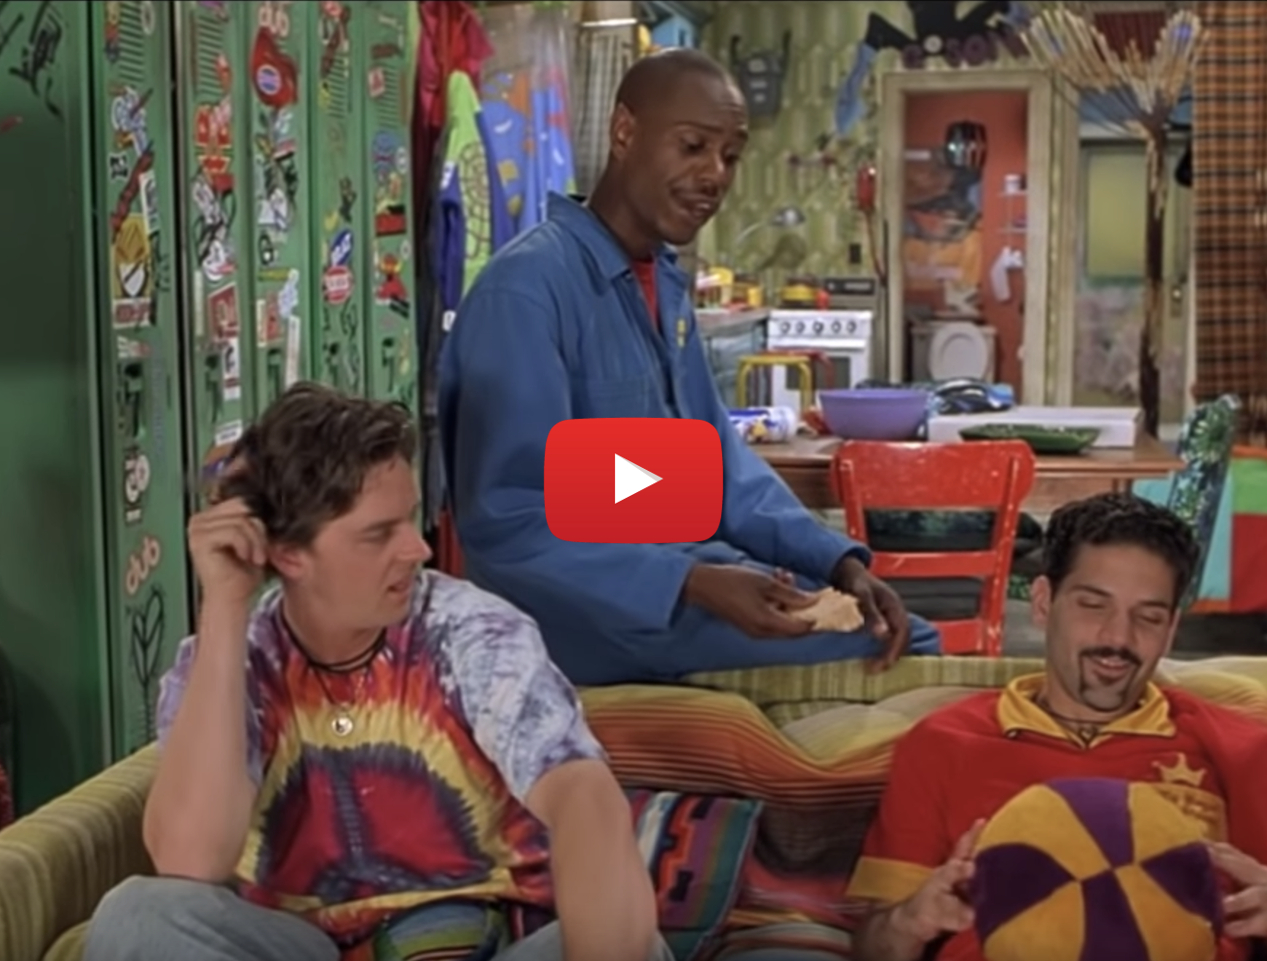 best stoner movies half baked video3 - Anything Dave Chappelle is good.. Best Stoner Movies - Half Baked is a weed classic!